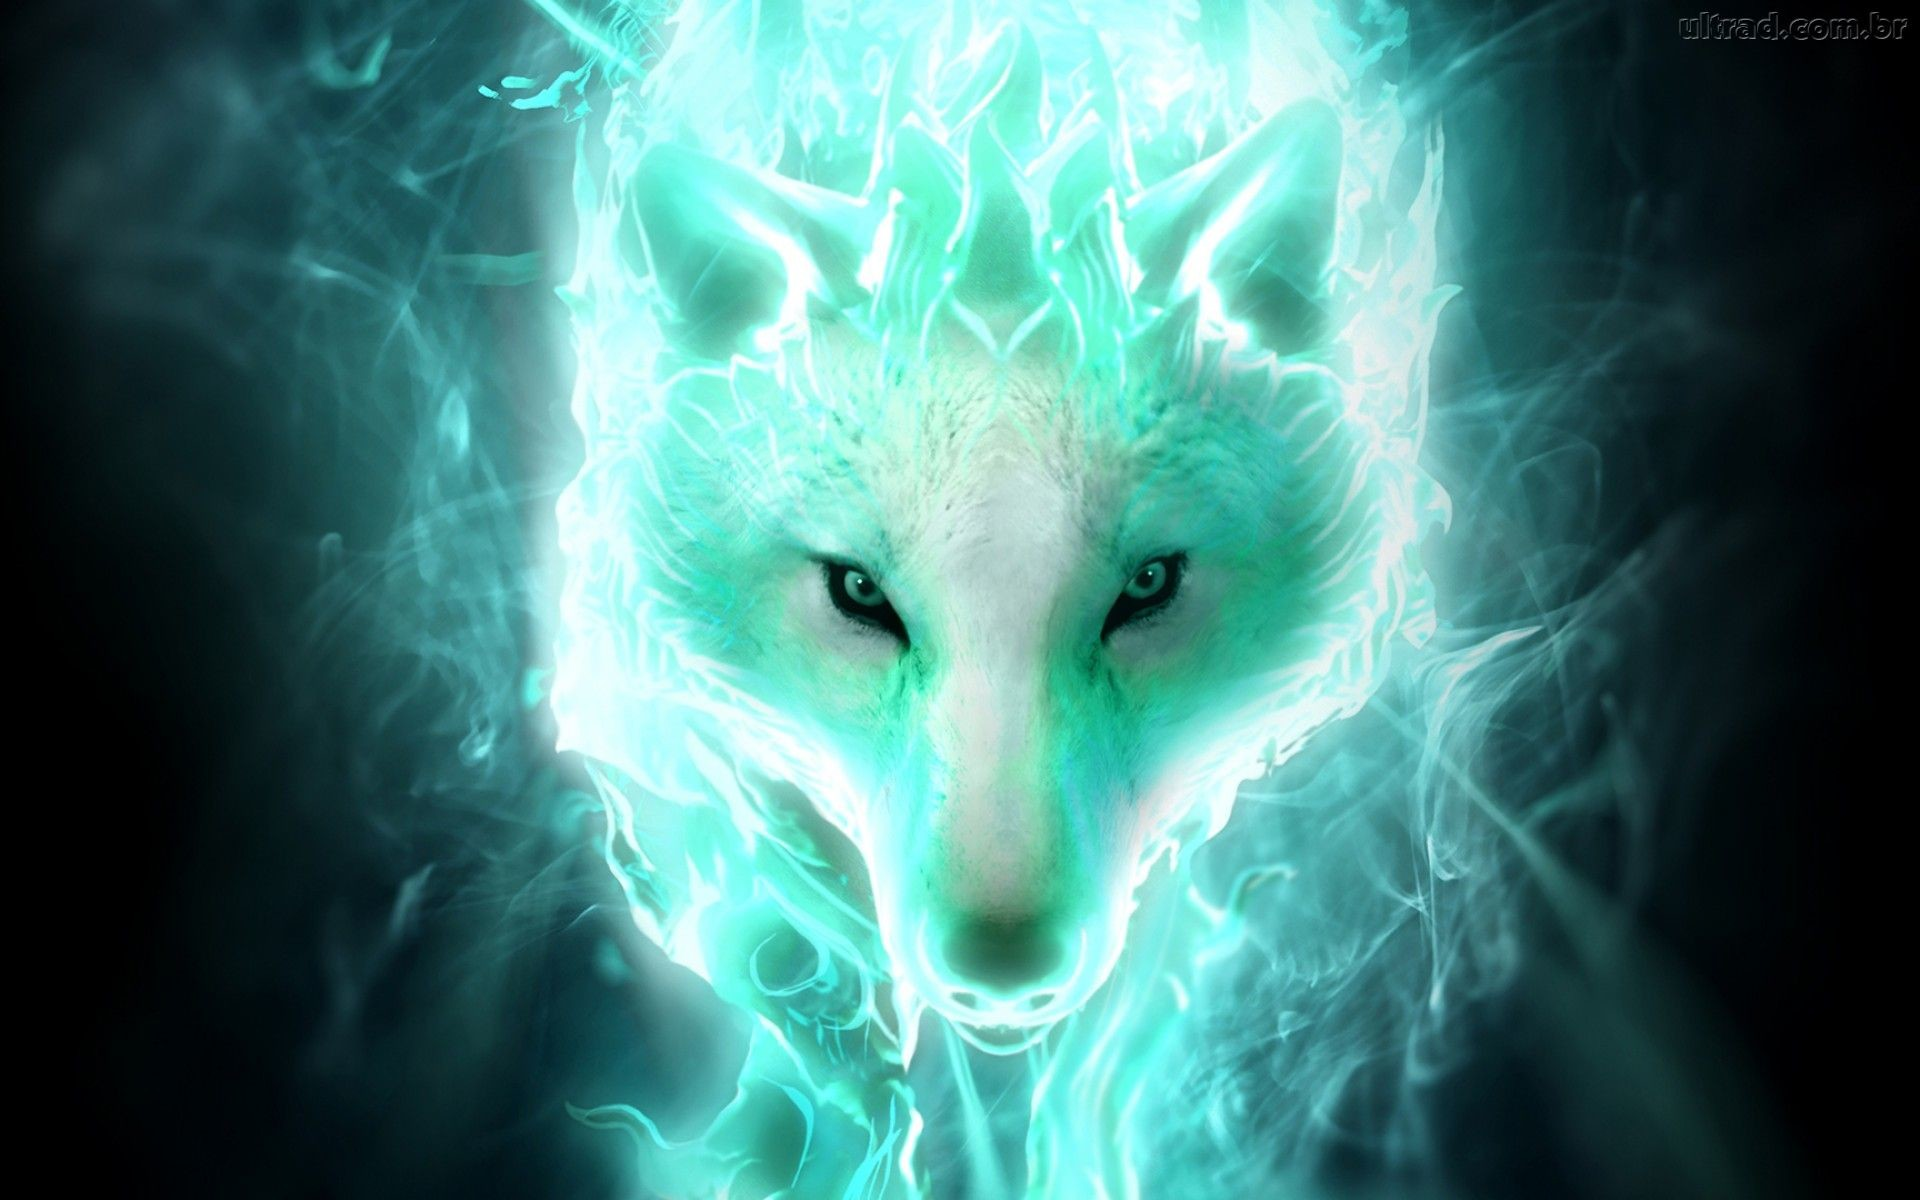 wolf pack funny | Wolf Pack Wallpaper – MixHD wallpapers | Wolven |  Pinterest | Wolf, Funny wolf and Wolf wallpaper